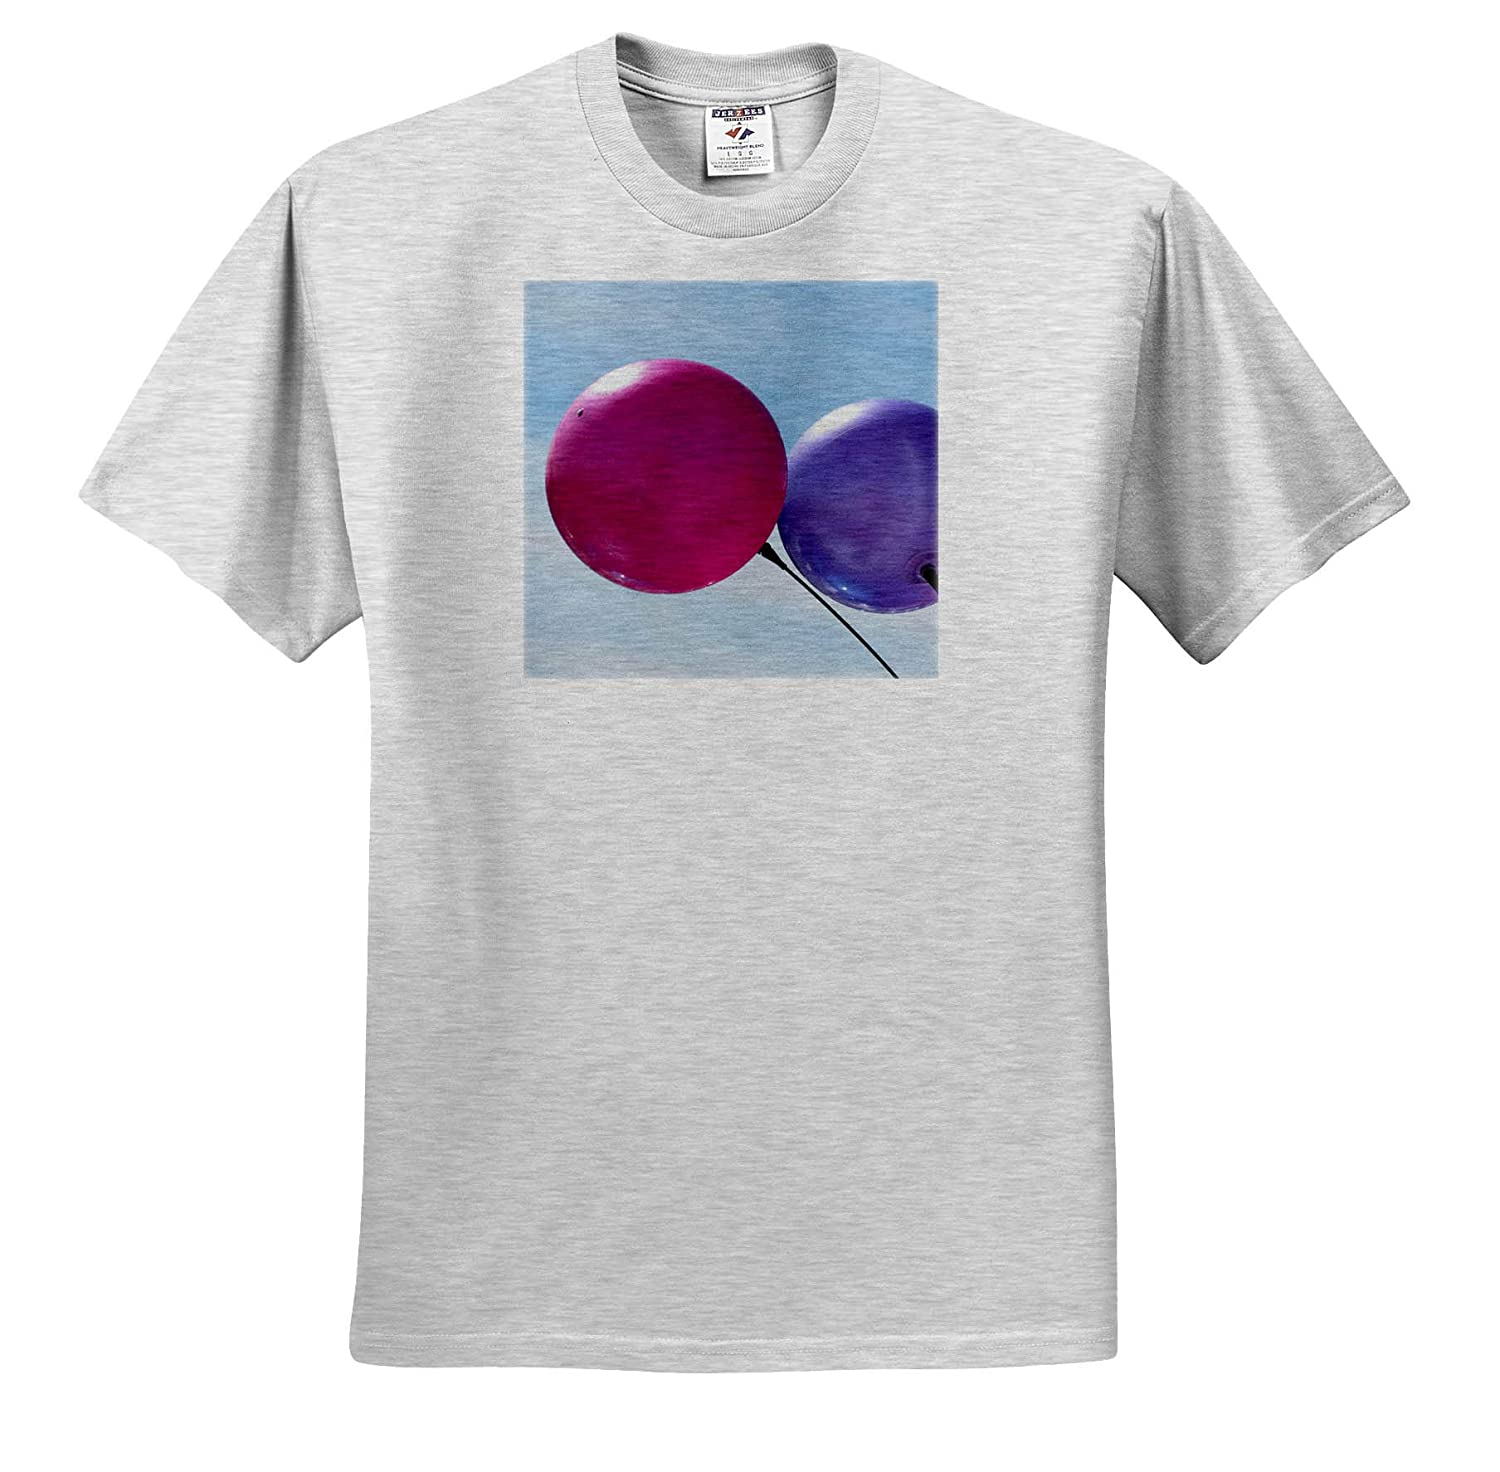 3dRose Jos Fauxtographee- Balloons ts/_319609 A Pink and Purple Balloon on a Pale Blue Sky Adult T-Shirt XL